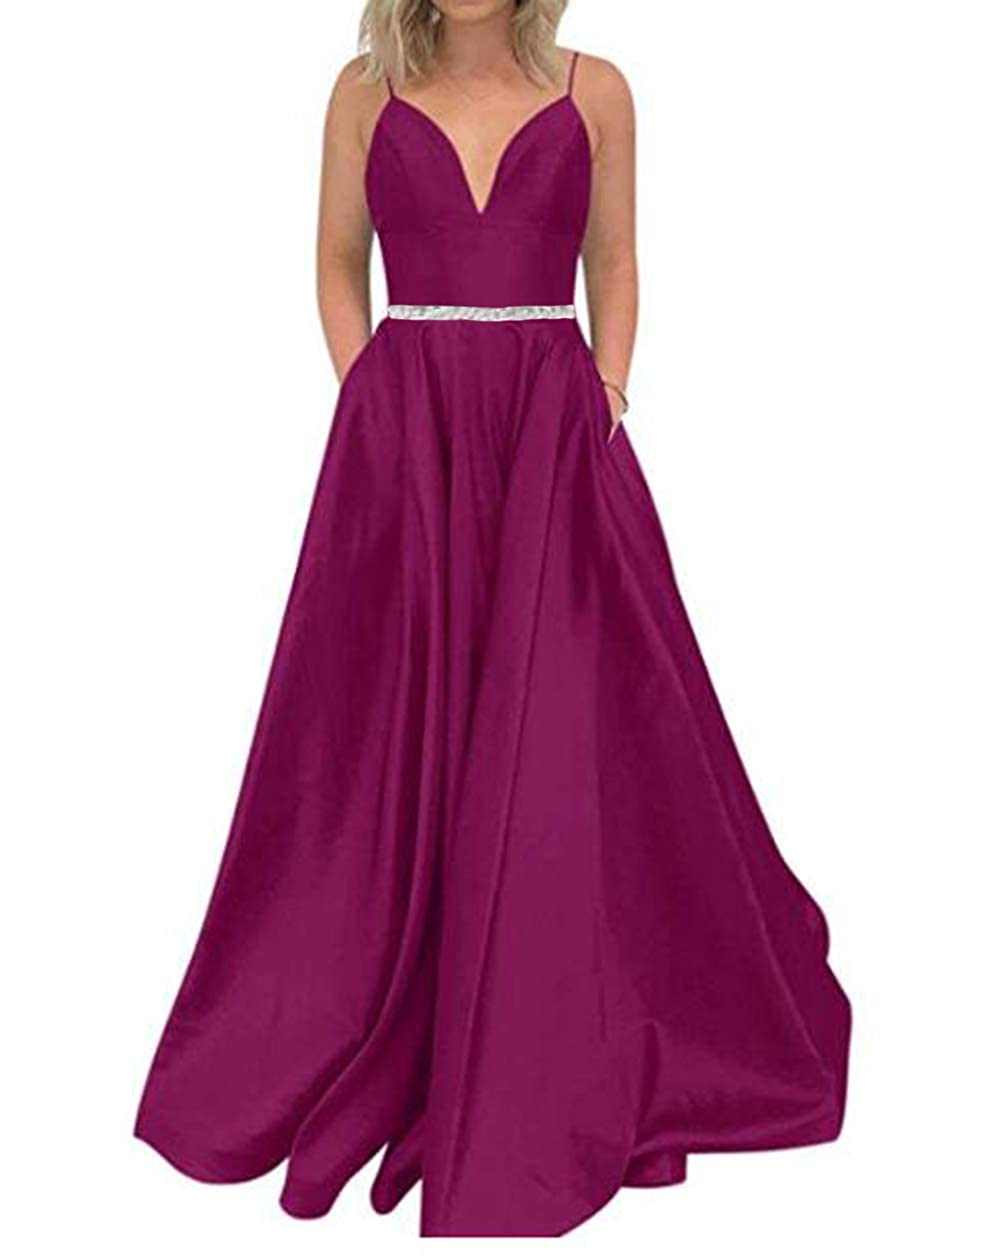 Fuchsia Tsbridal Women's A Line Bead Prom Dresses V Neck Satin with Pockets Evening Gown